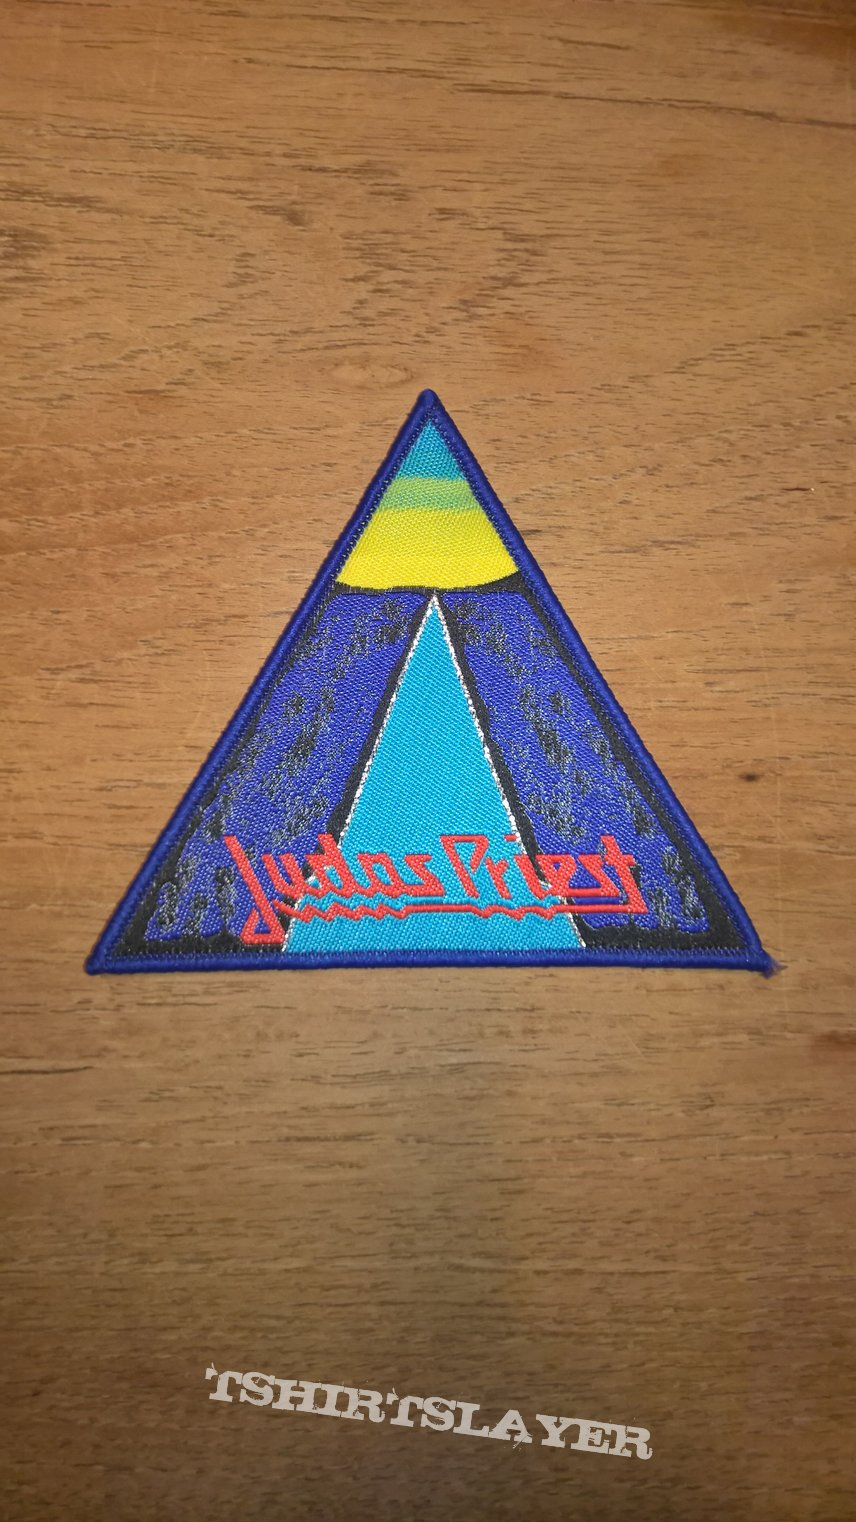 Judas Priest - Point of Entry woven patch